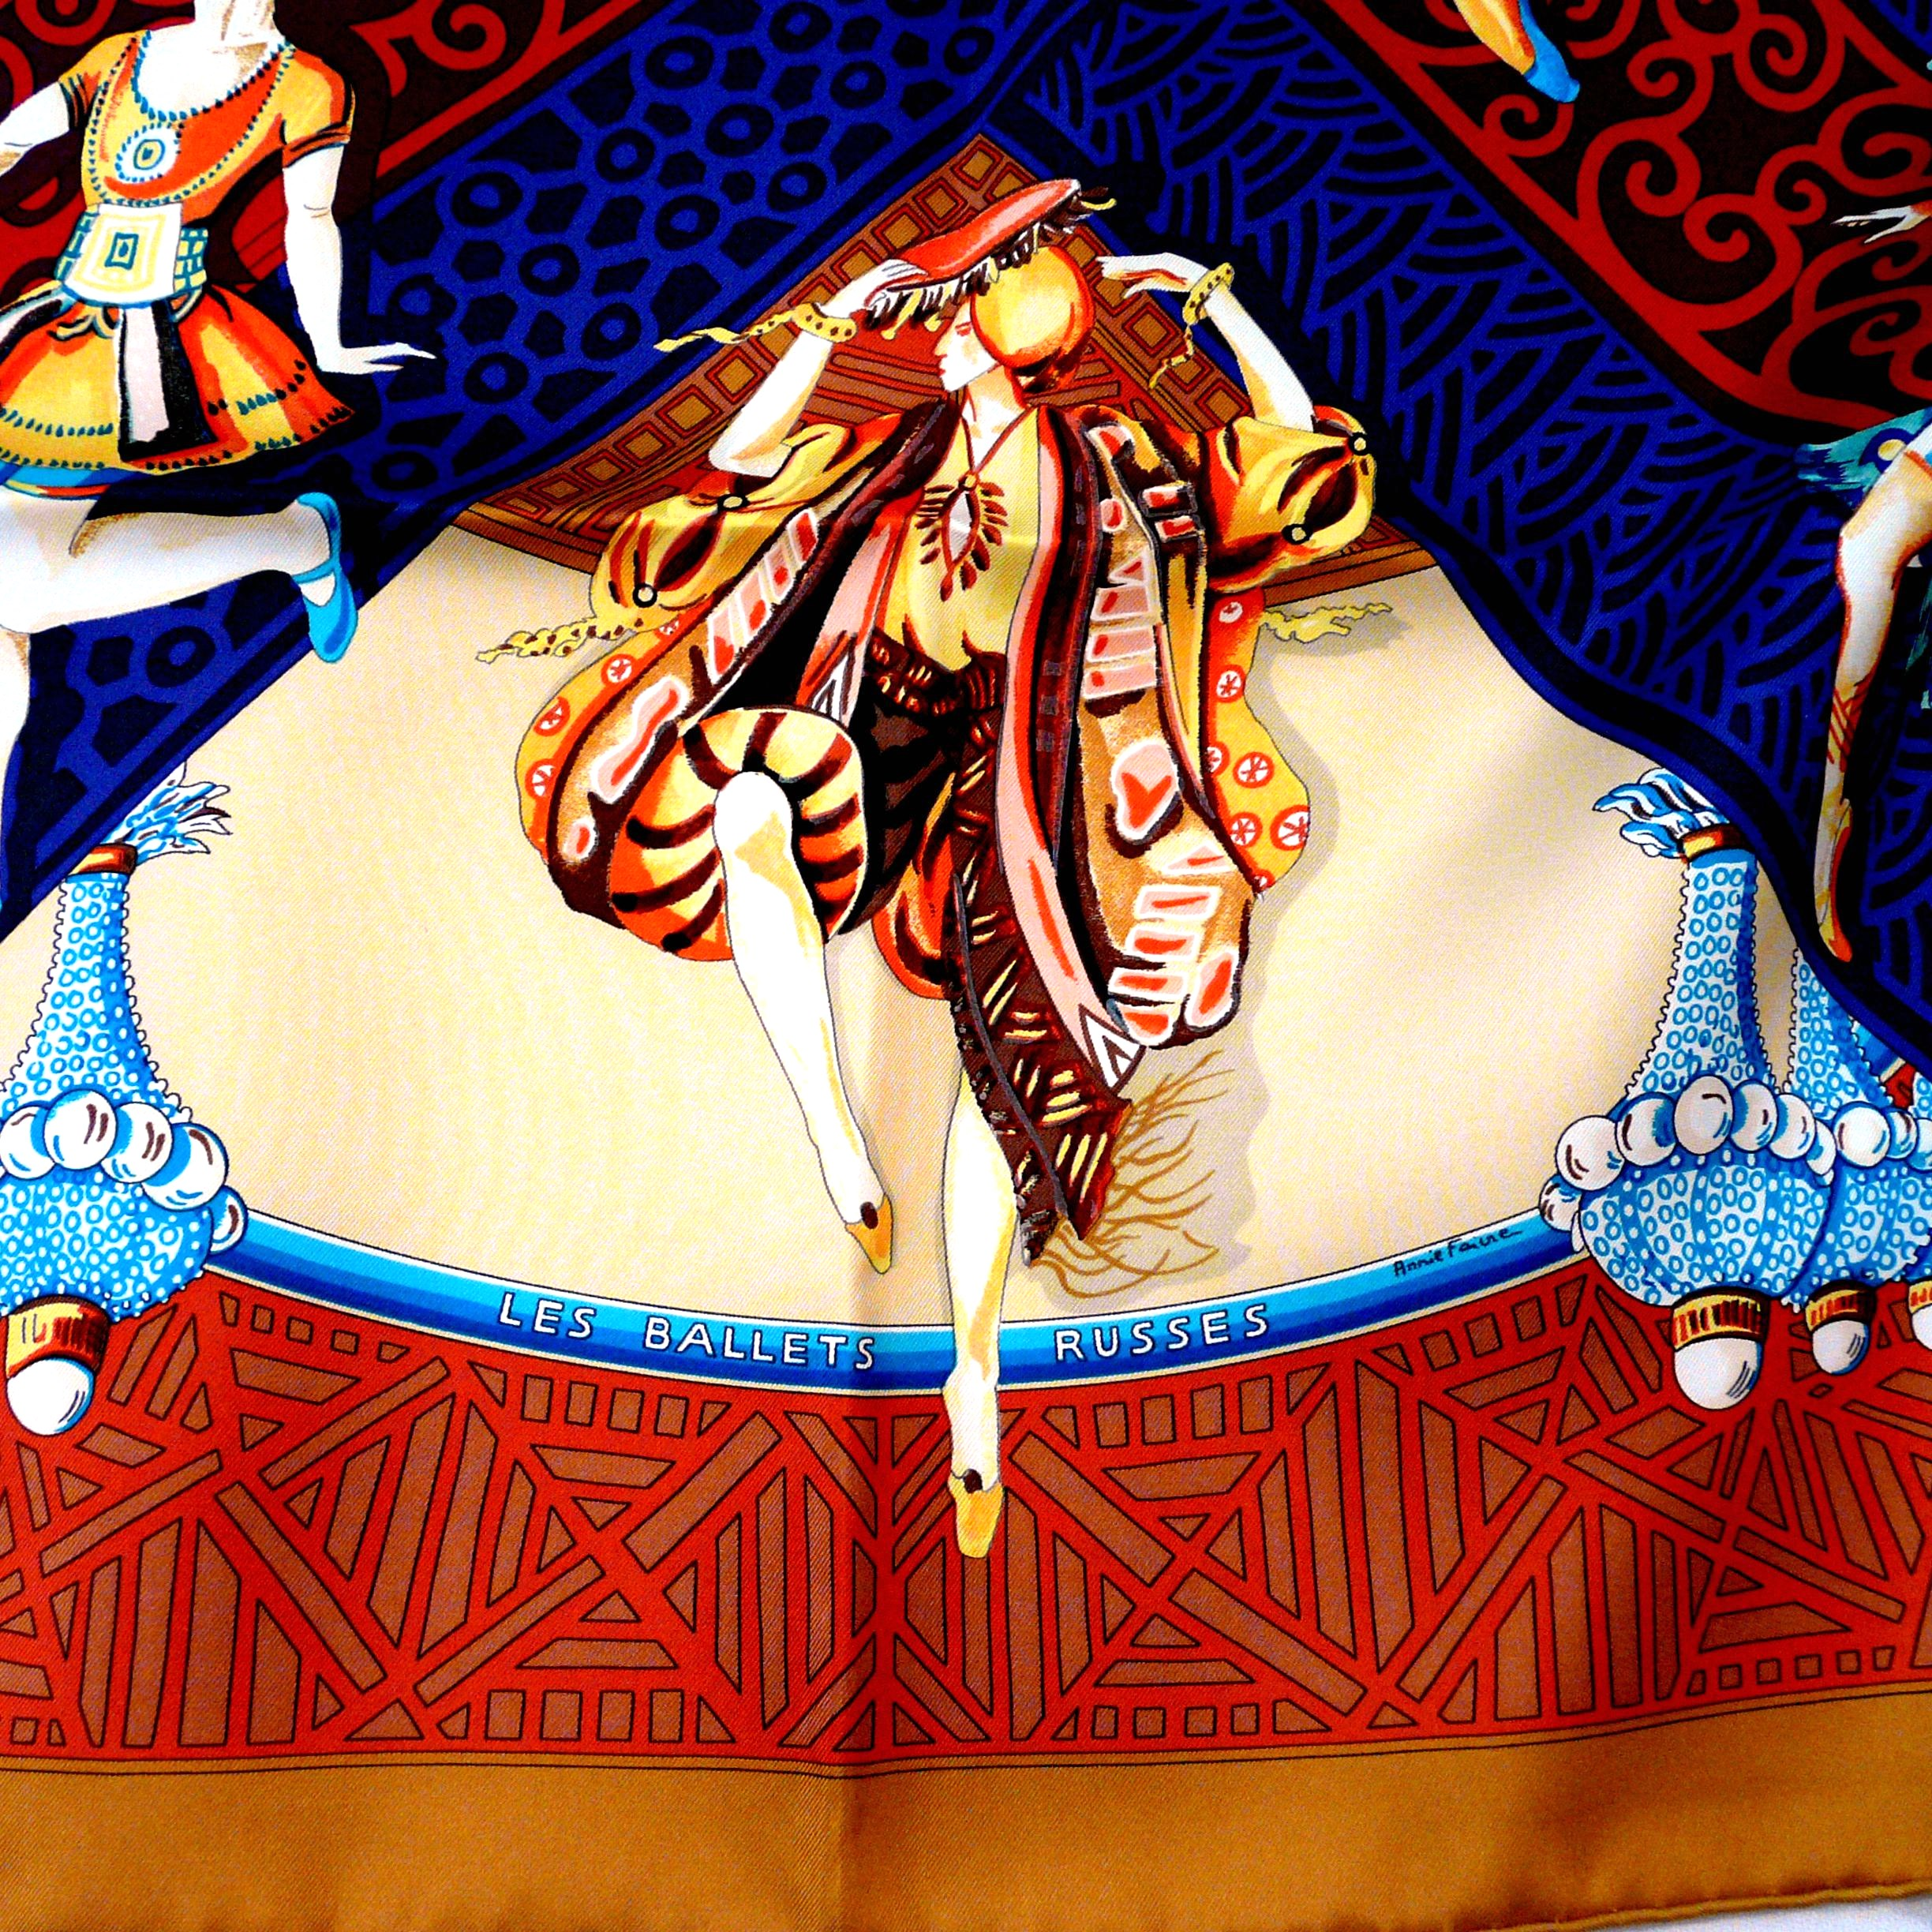 Les Ballets Russes HERMES 36 inch x 36 inch Silk Twill Carre Artist Signature